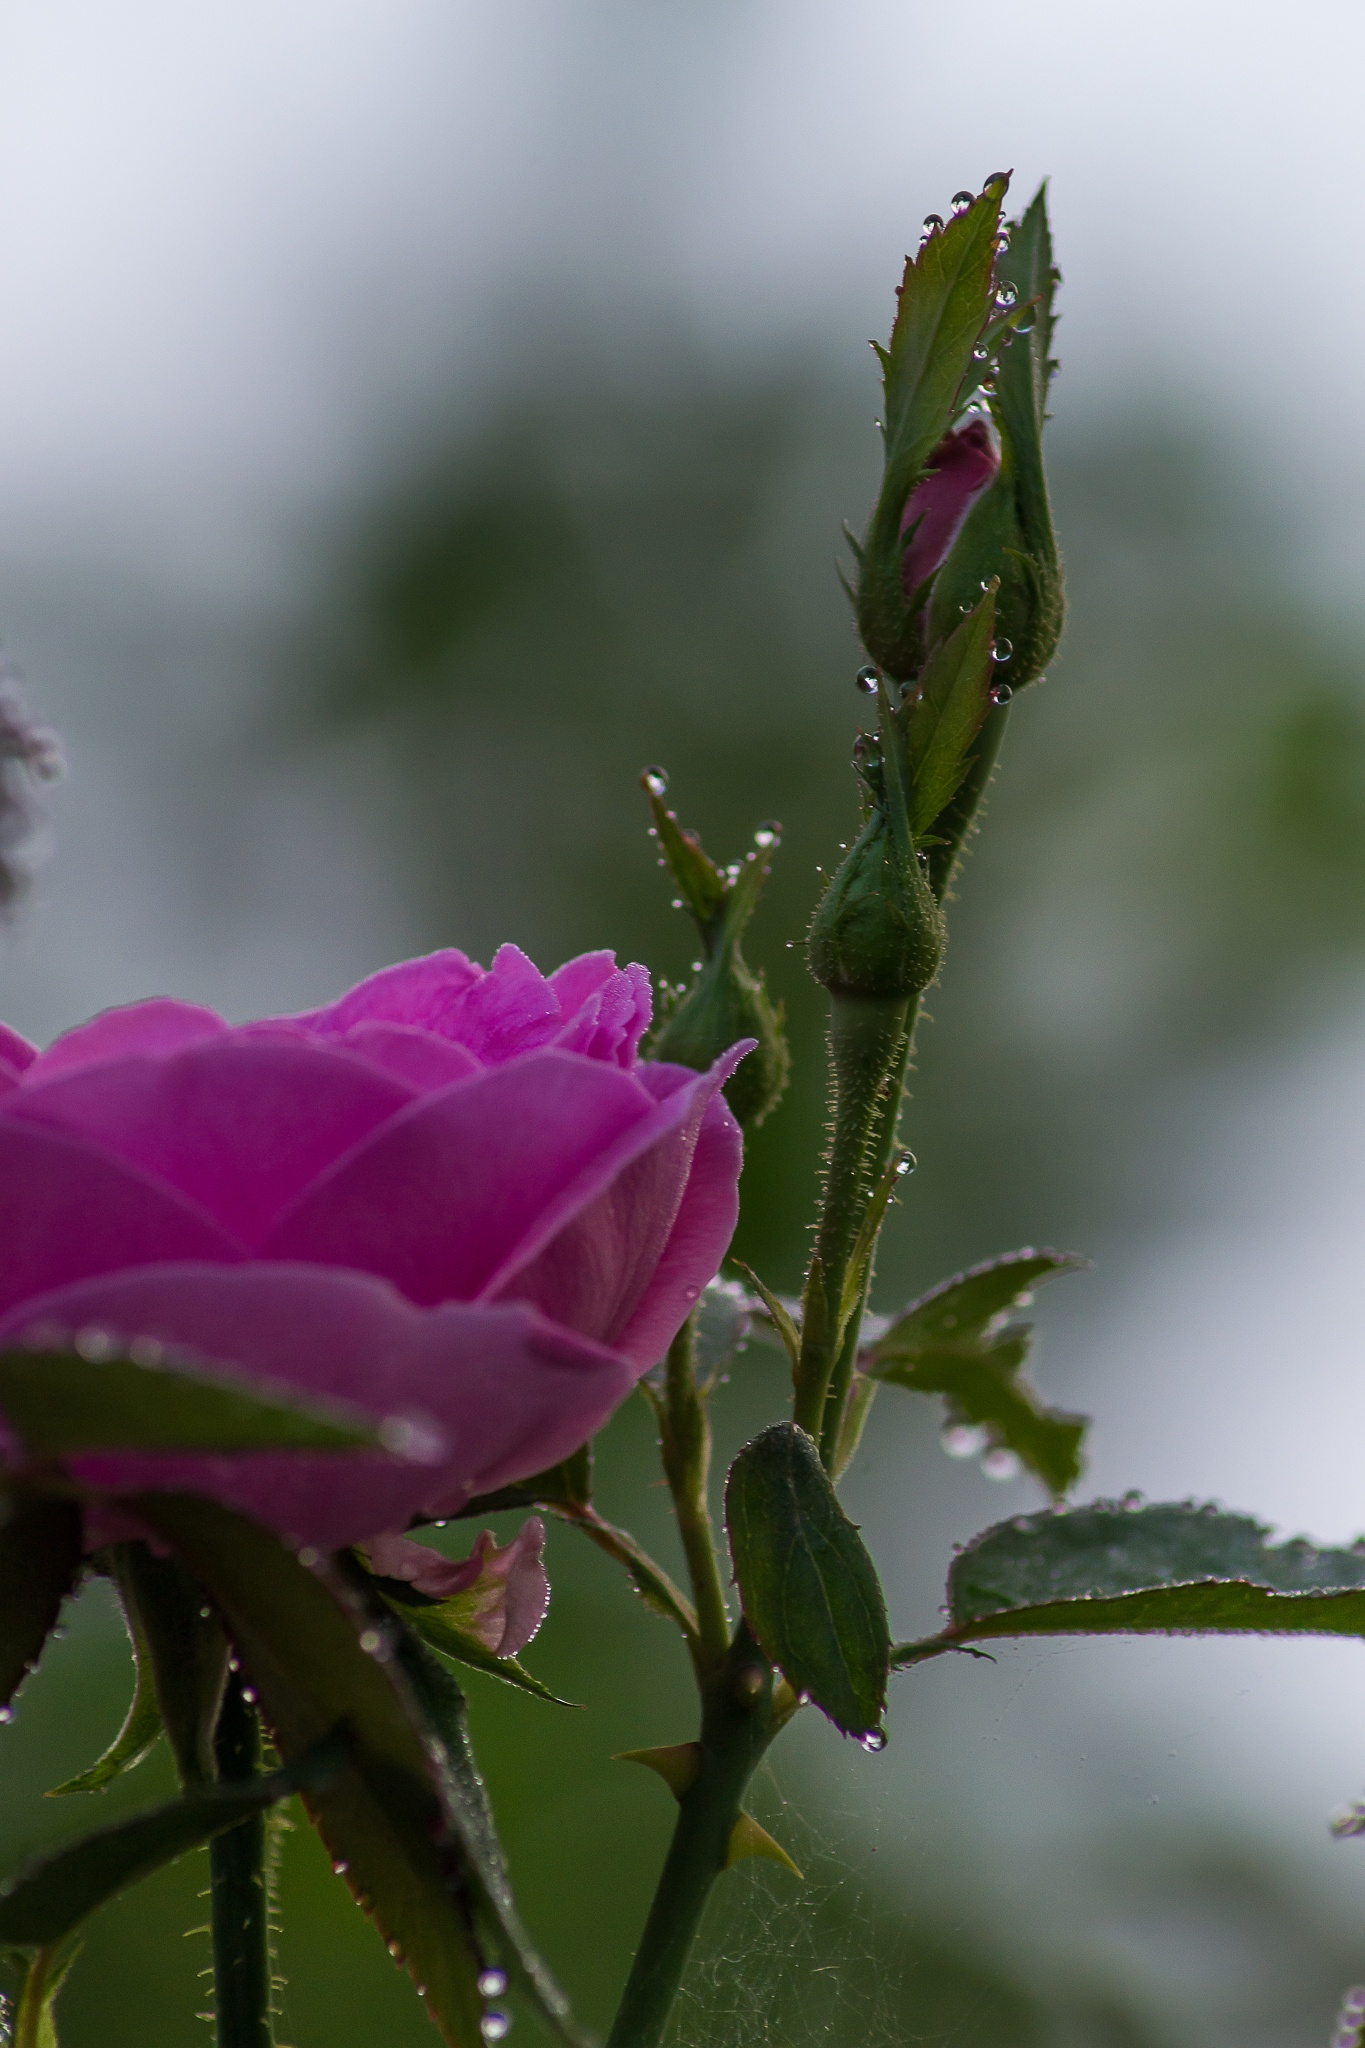 the roses by mohd kamal